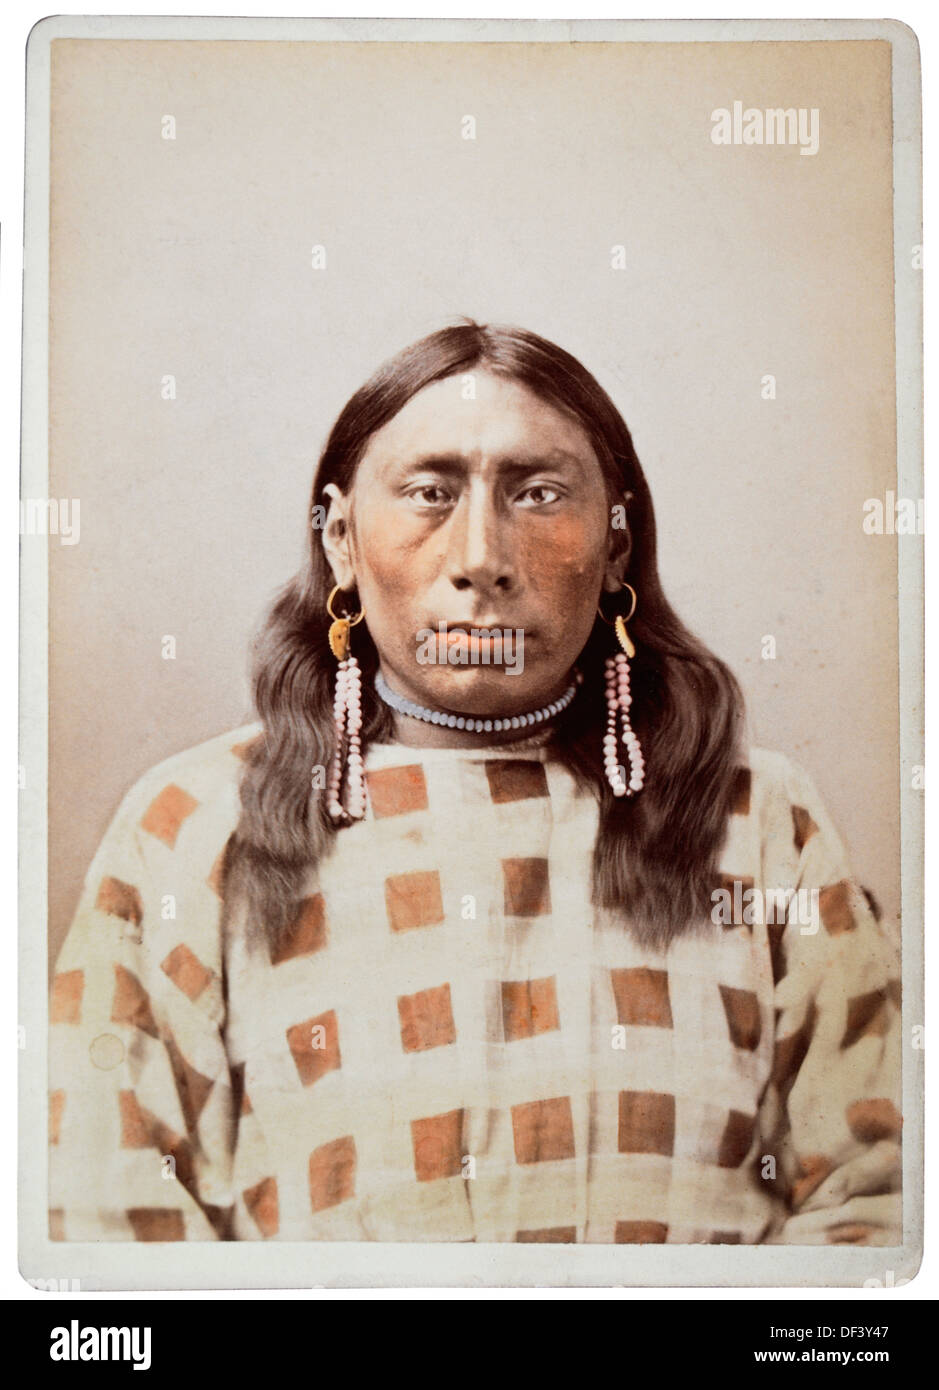 Jessie Iron Bull, Native American, Portrait, Hand-Colored Photograph, 1882 - Stock Image